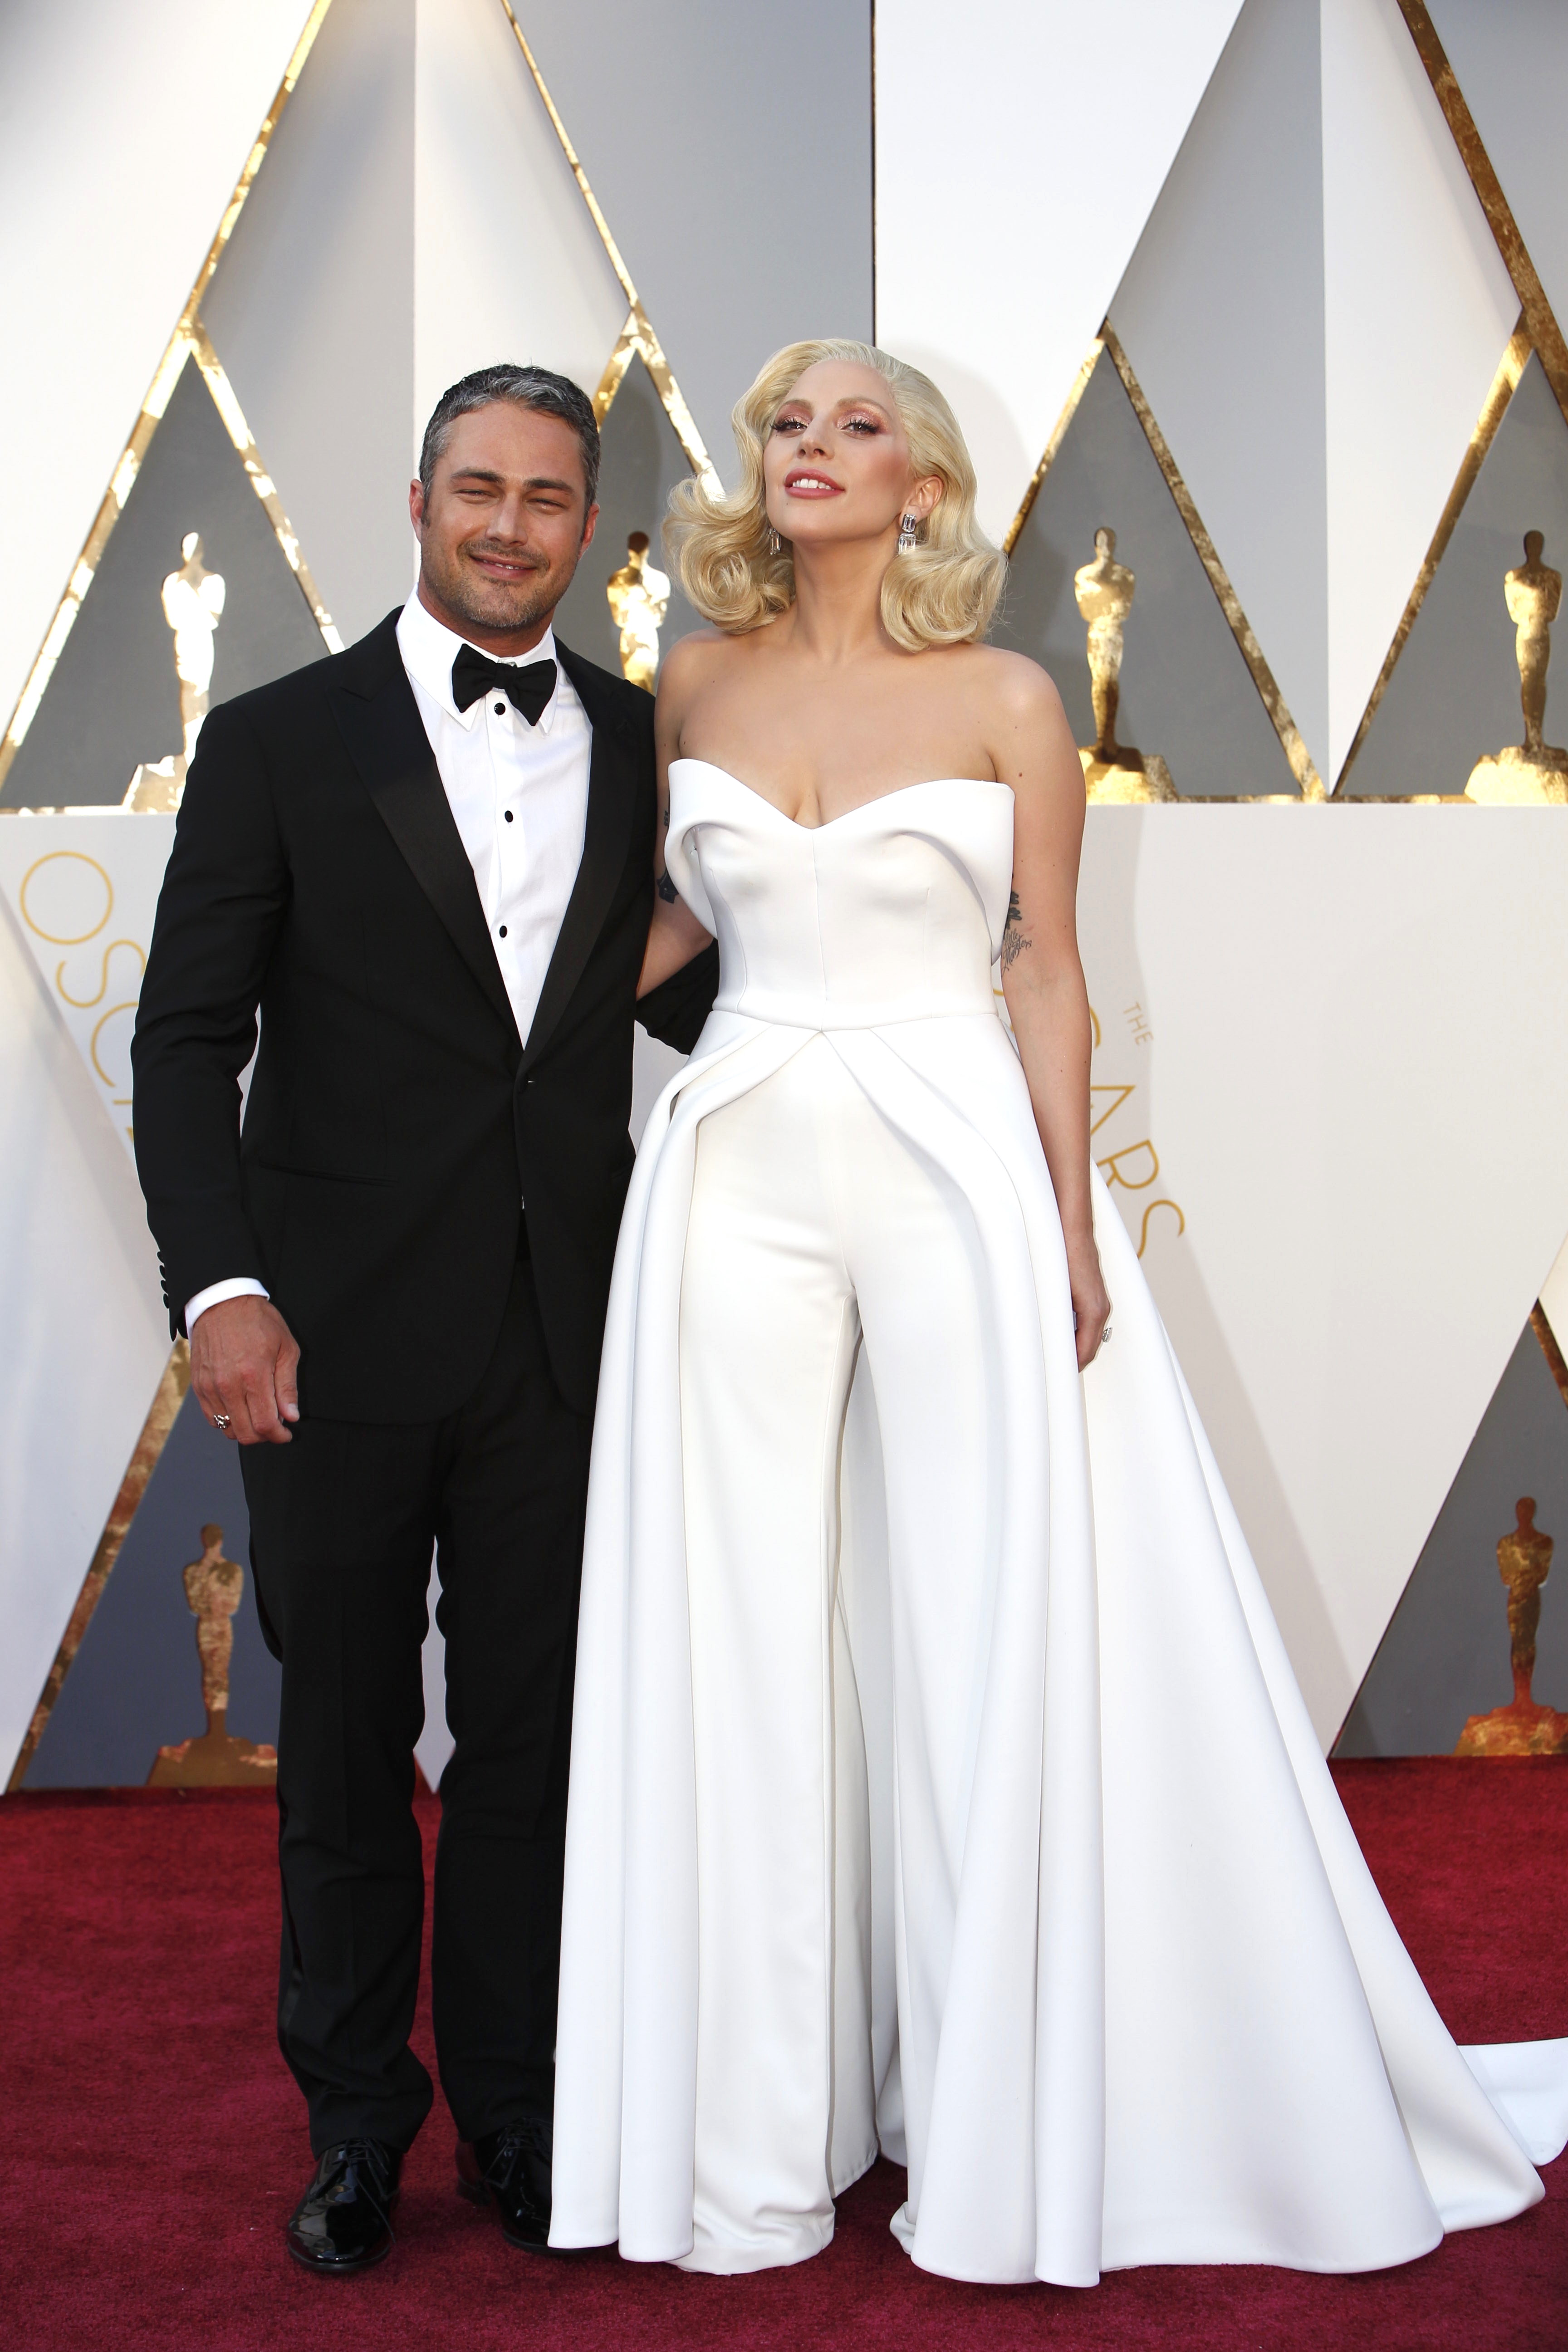 88th Academy Awards besides ChrisDrew furthermore Watch Lady Gaga On The Oscars 2016 Red Carpet likewise Highlights V West Brom together with Rachel Griffiths P196152. on oscar 2016 watch online highlights